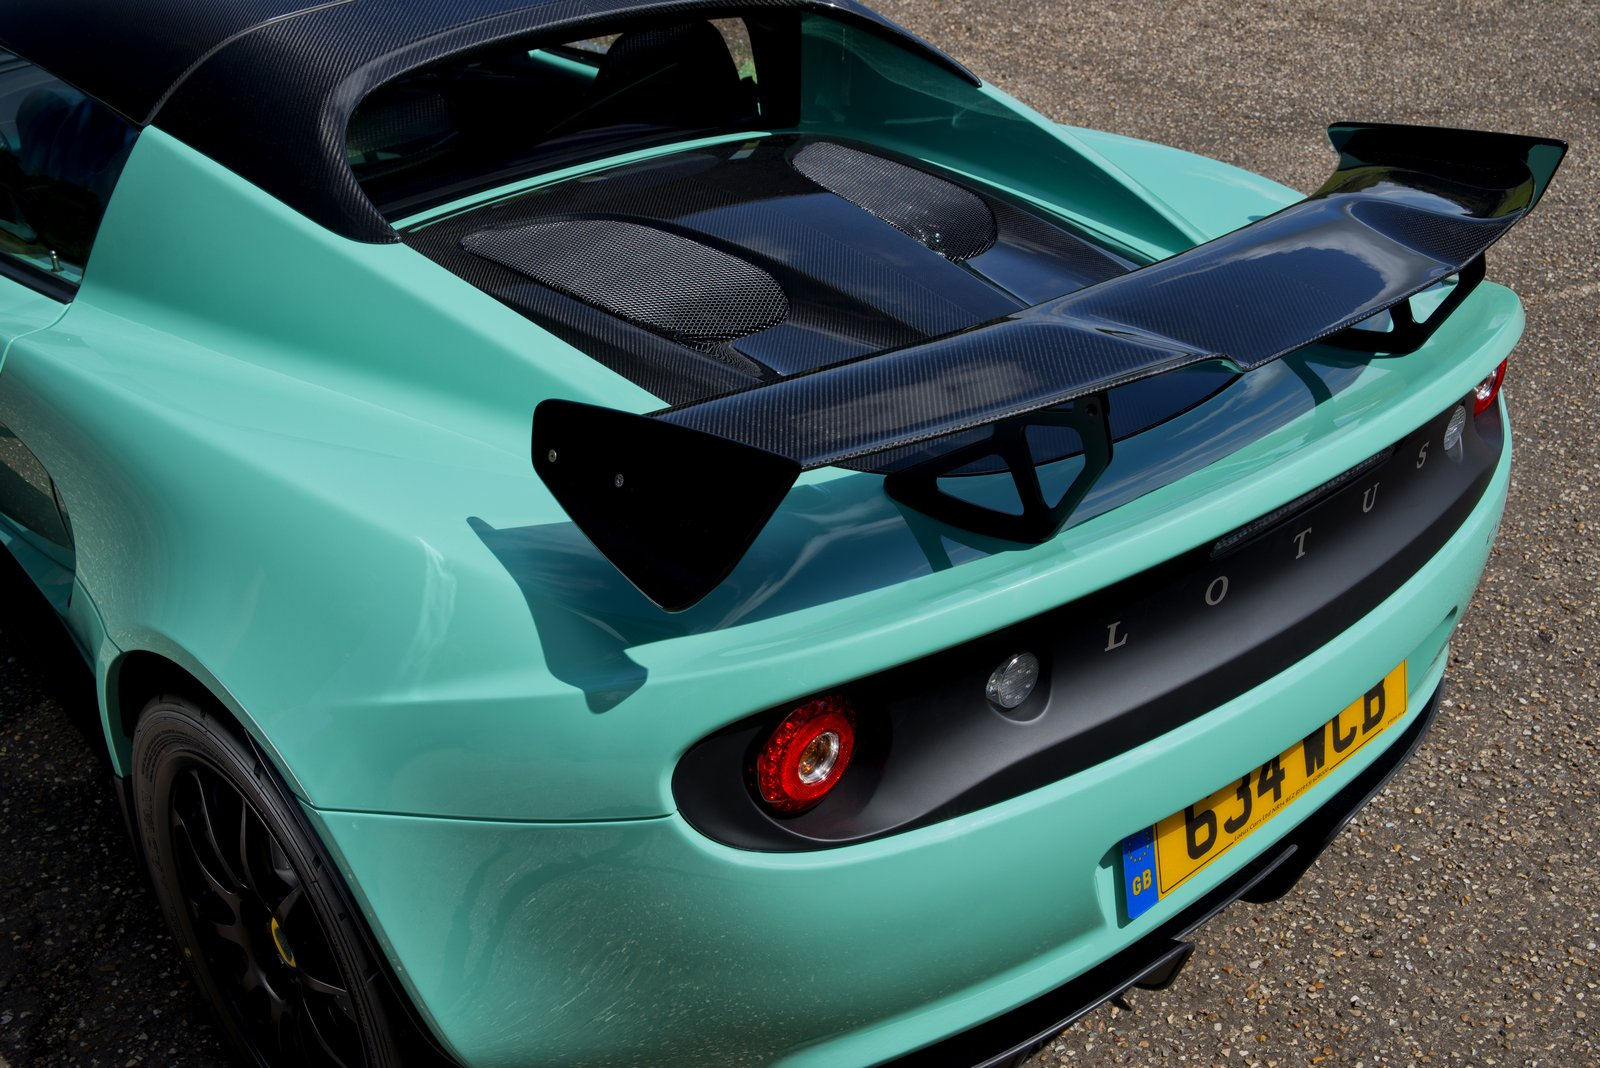 new lotus elise cup 250 features styling tweaks and a weight reduction. Black Bedroom Furniture Sets. Home Design Ideas